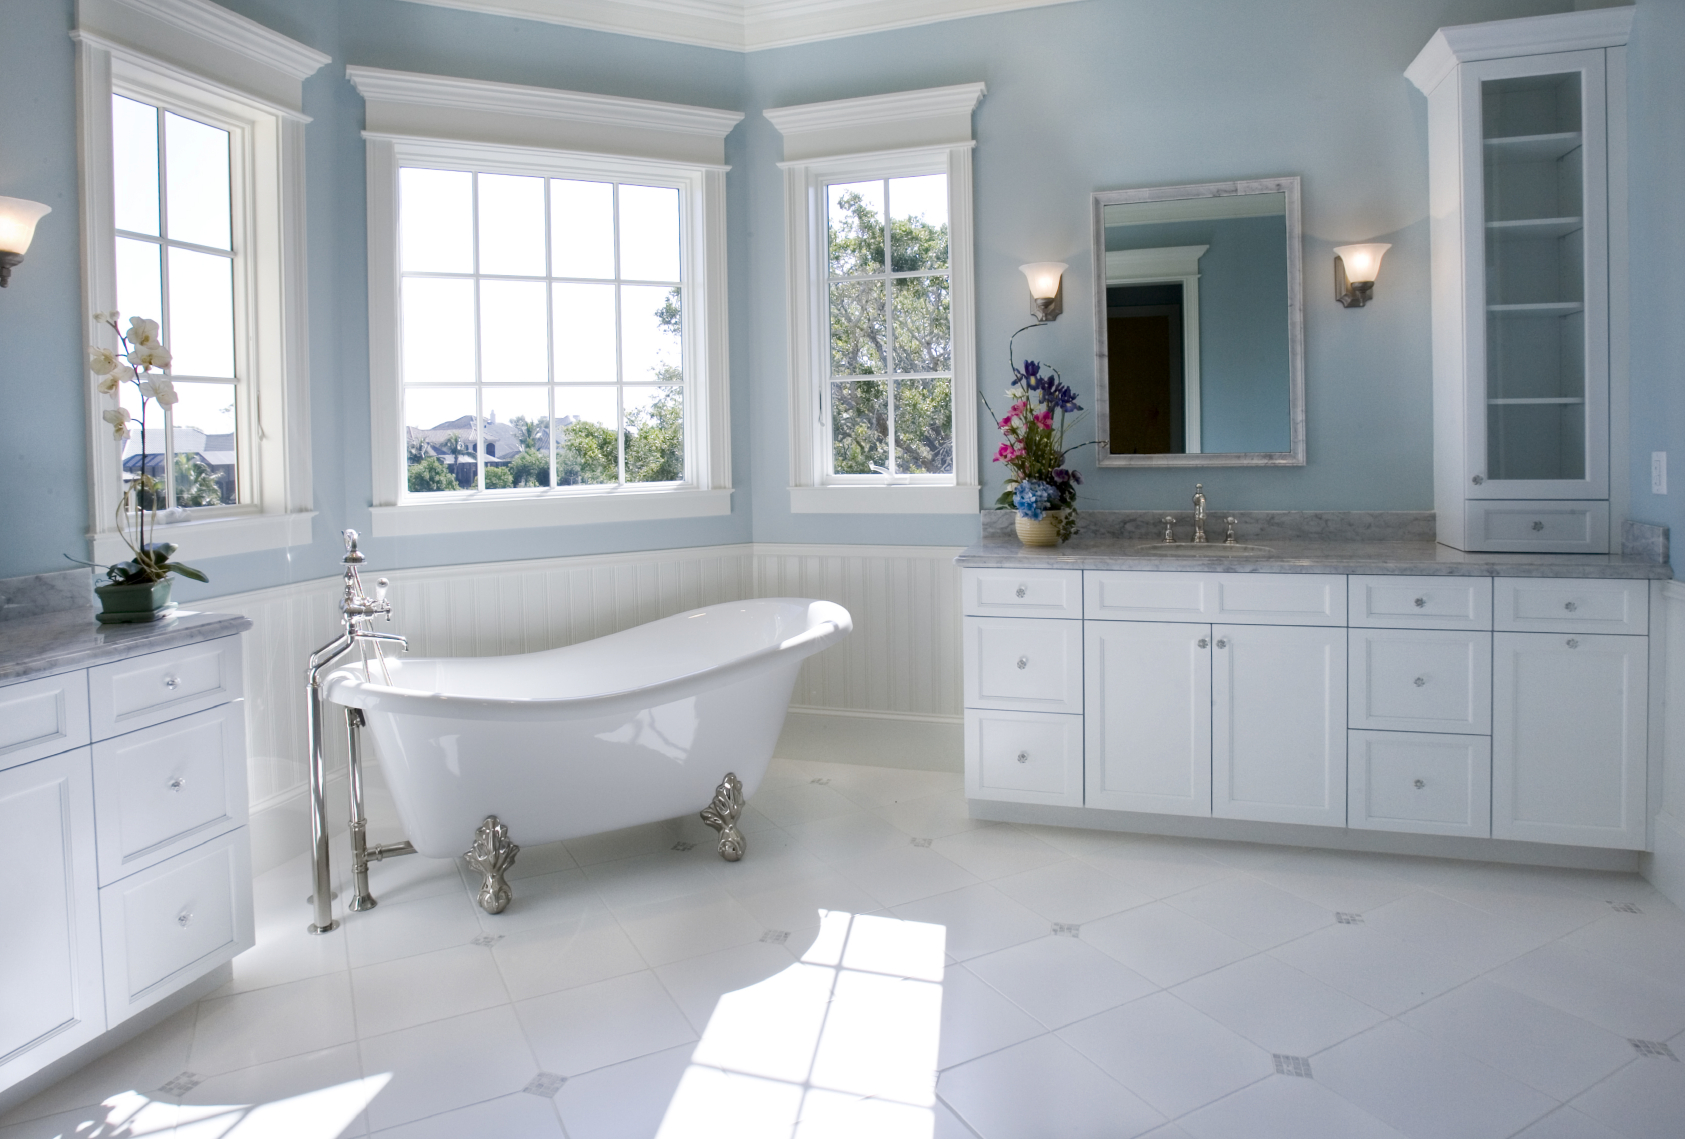 float above the white cabinetry and marble flooring in this bathroom